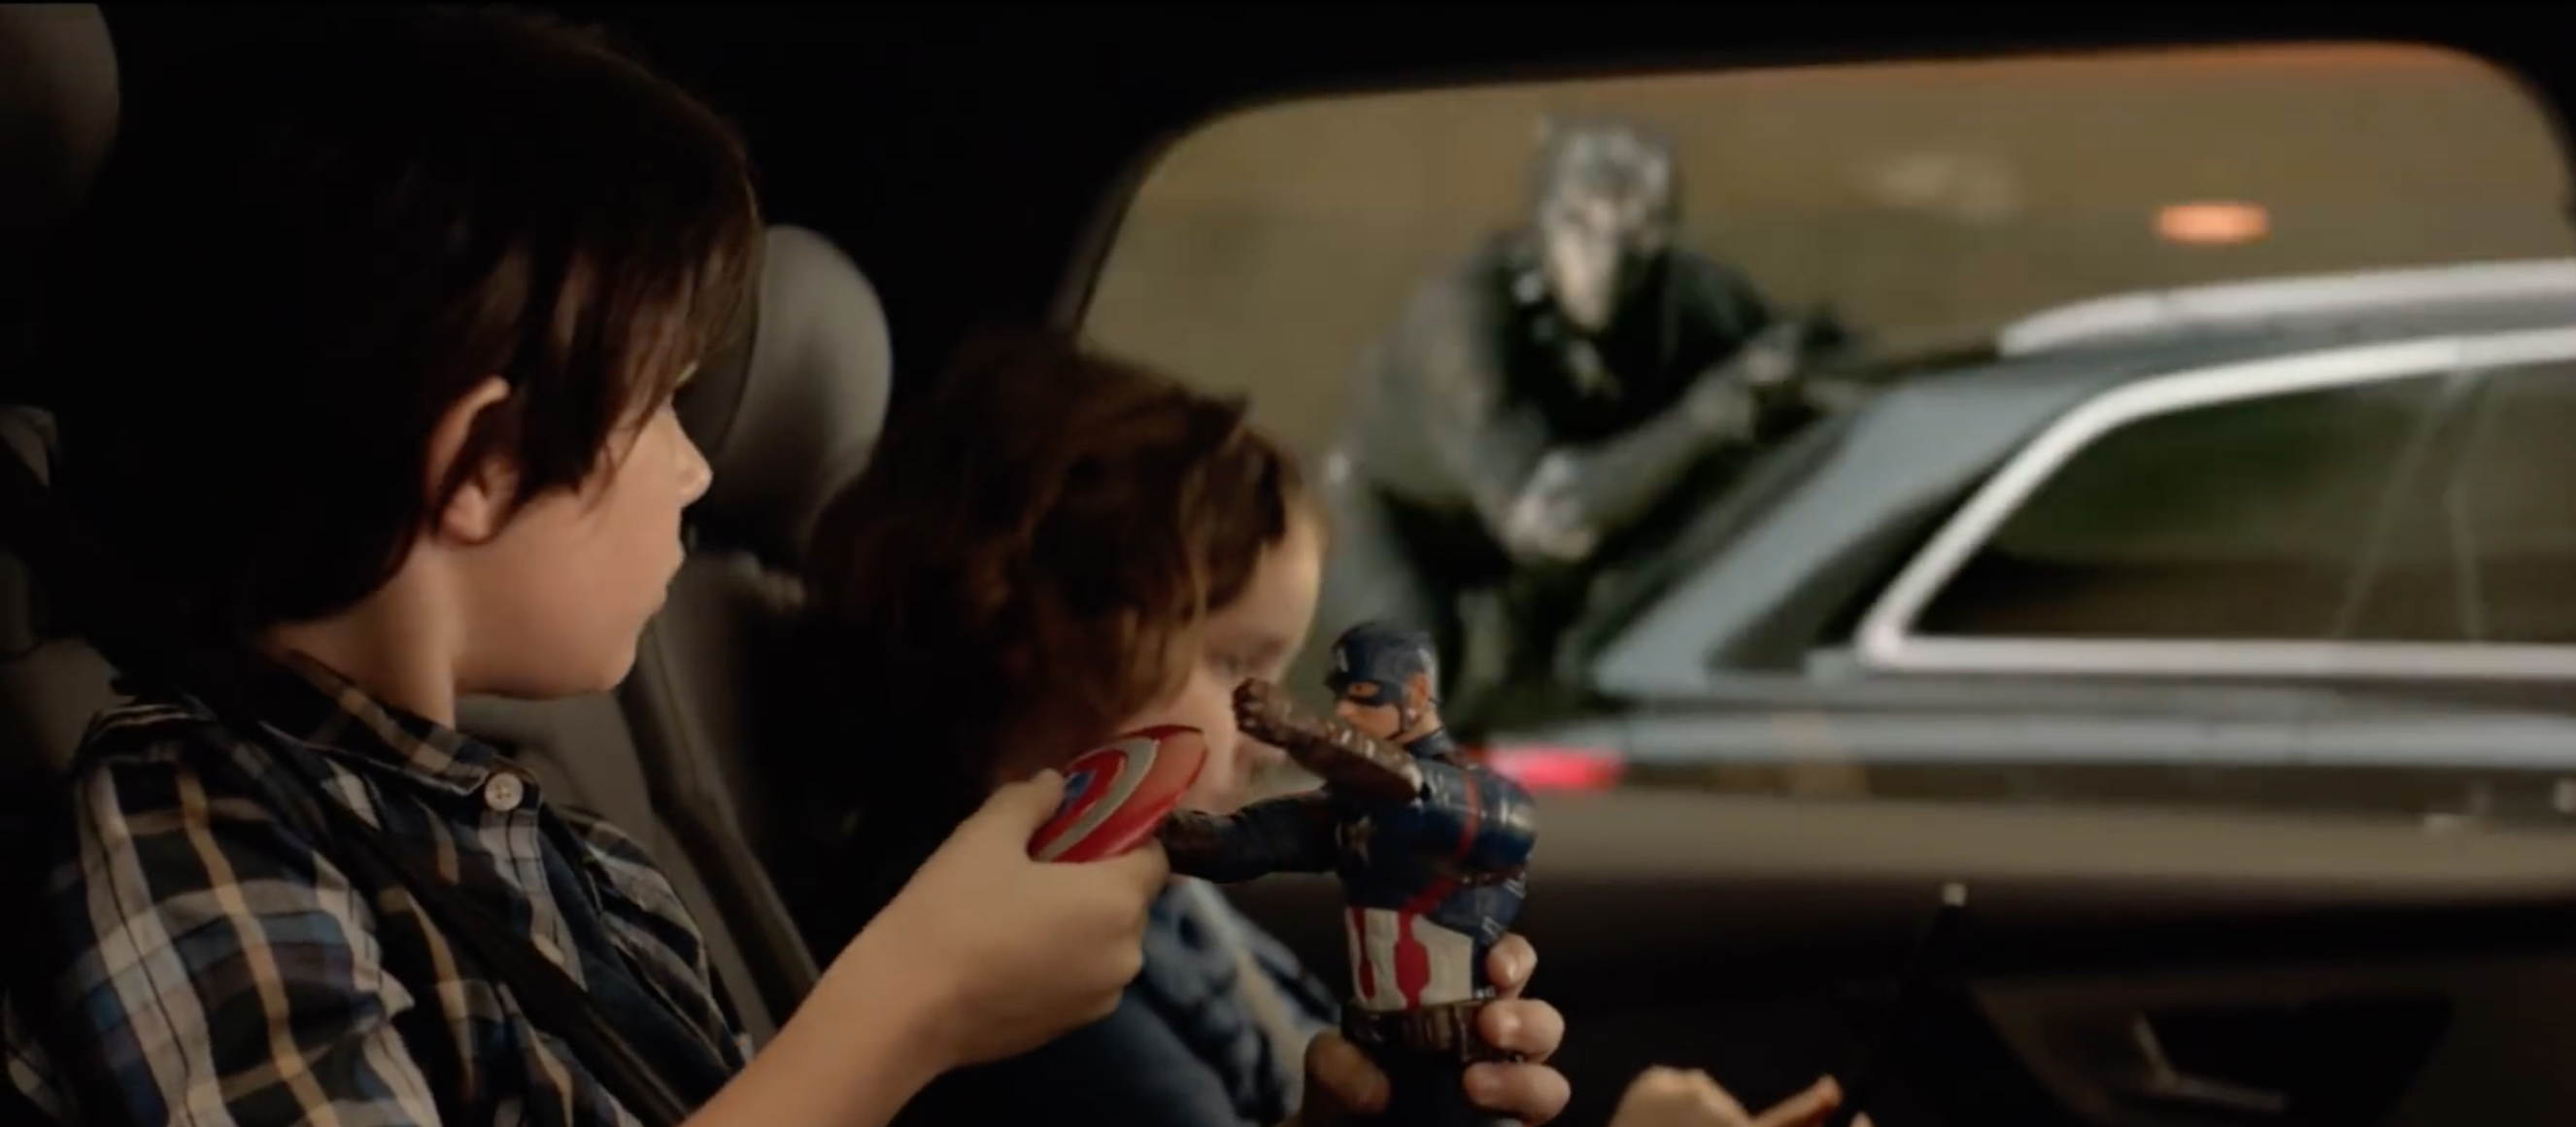 audi captain america civil war chase the inspiration room